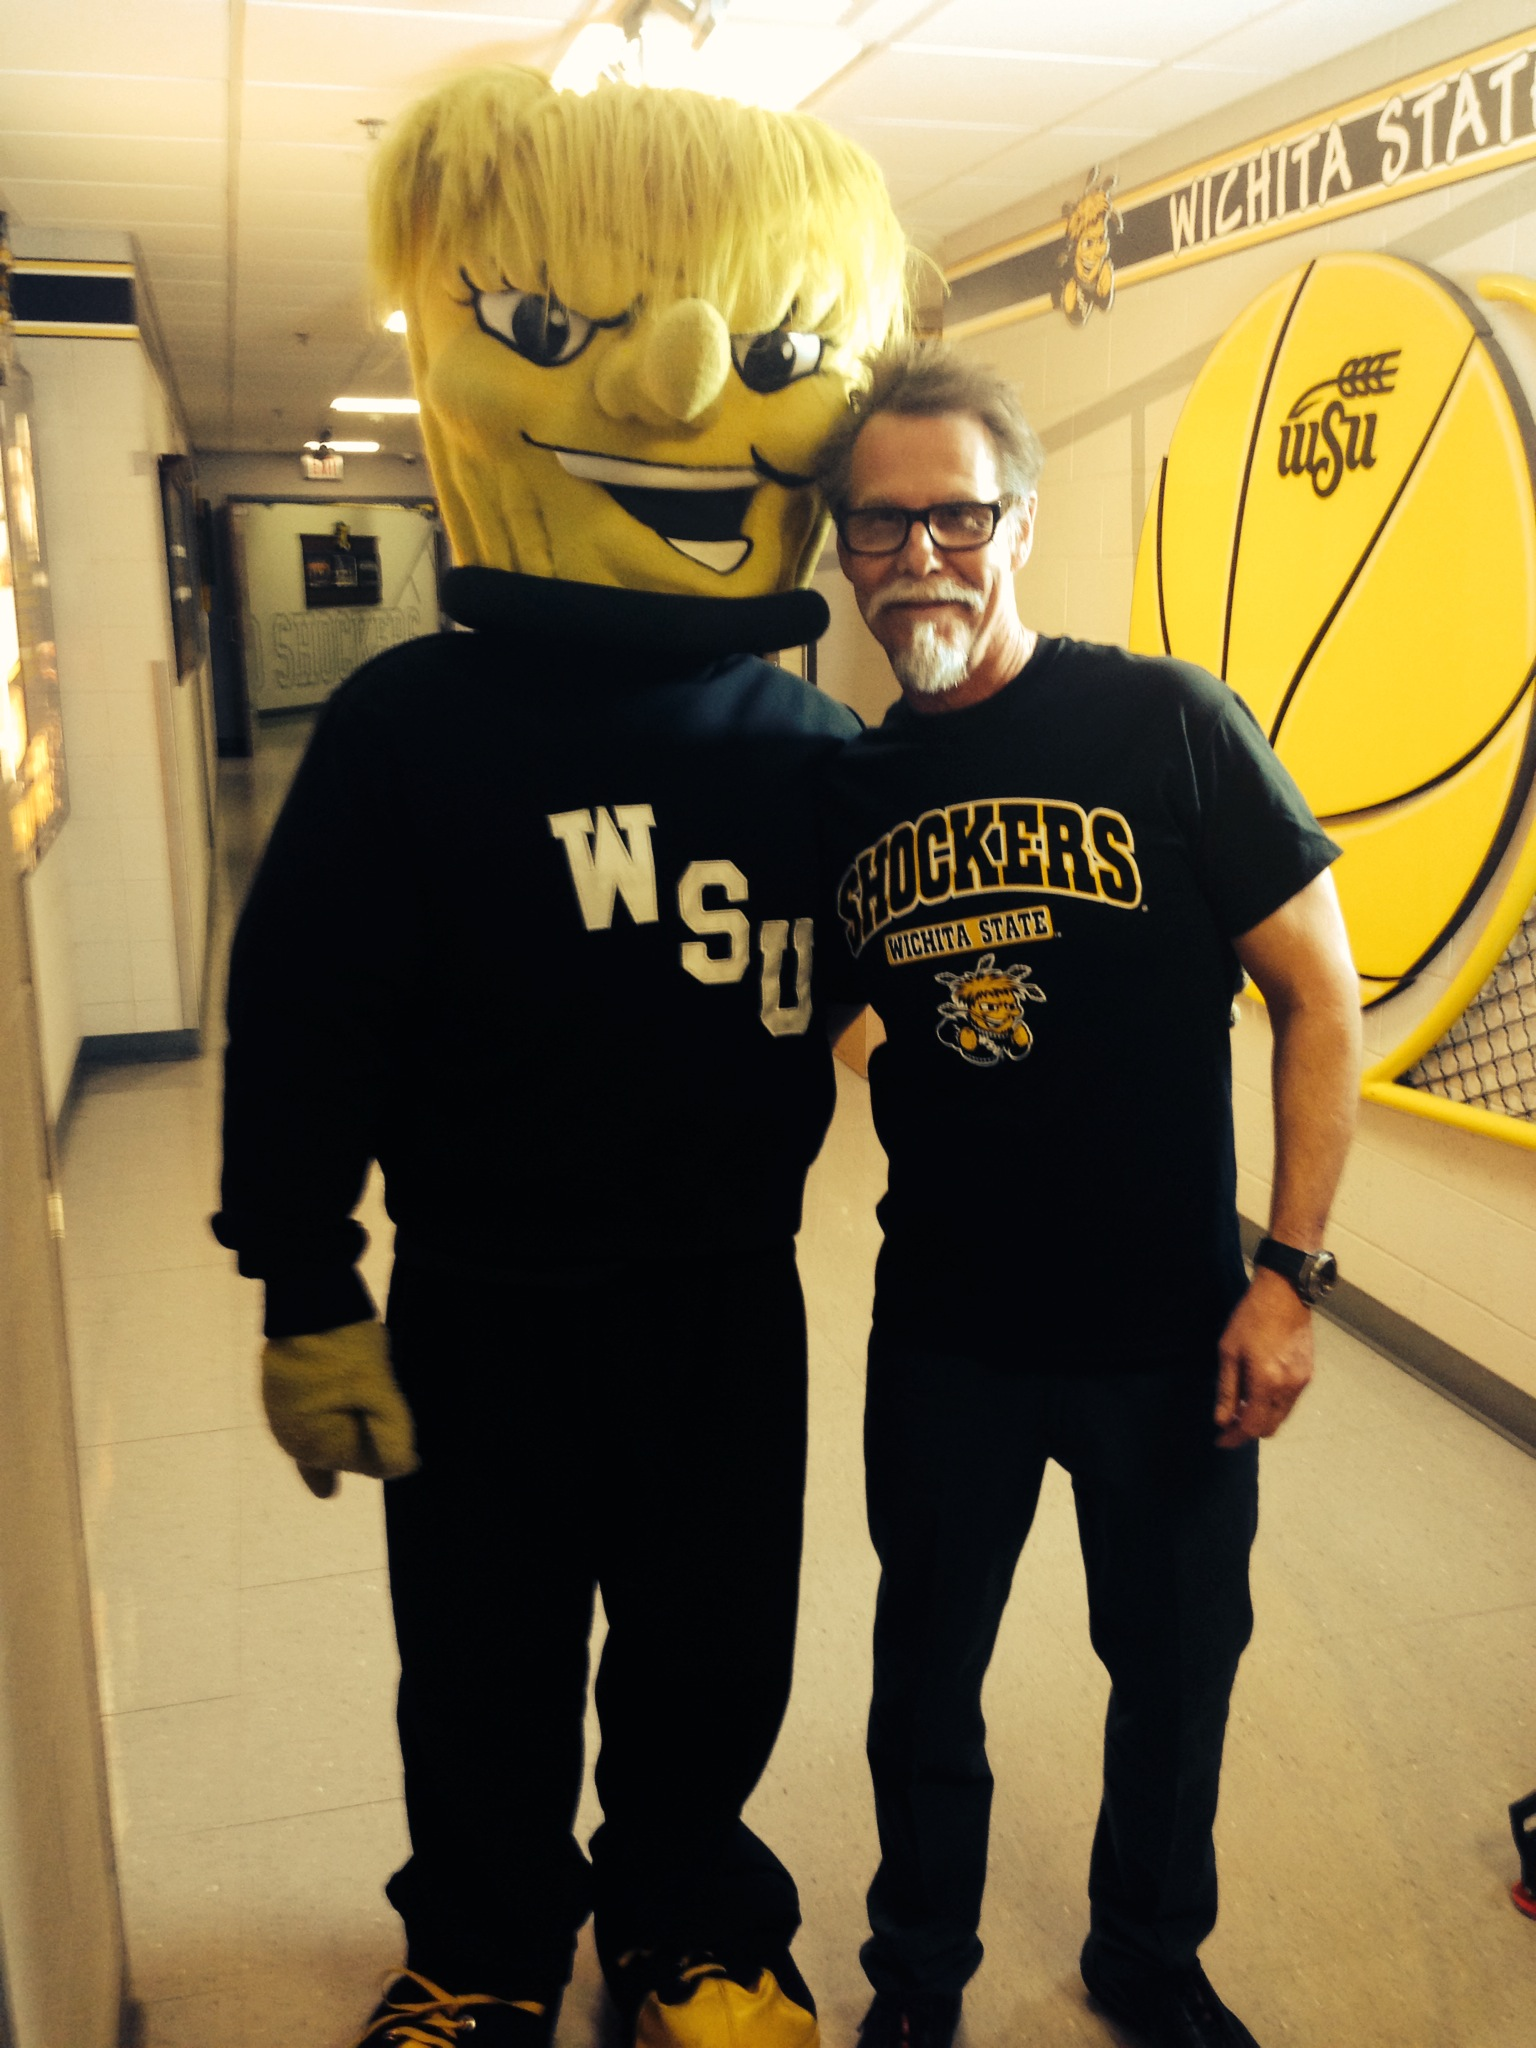 Sports fan Eric Fisher with WuShock, the mascot for Wichita State University.